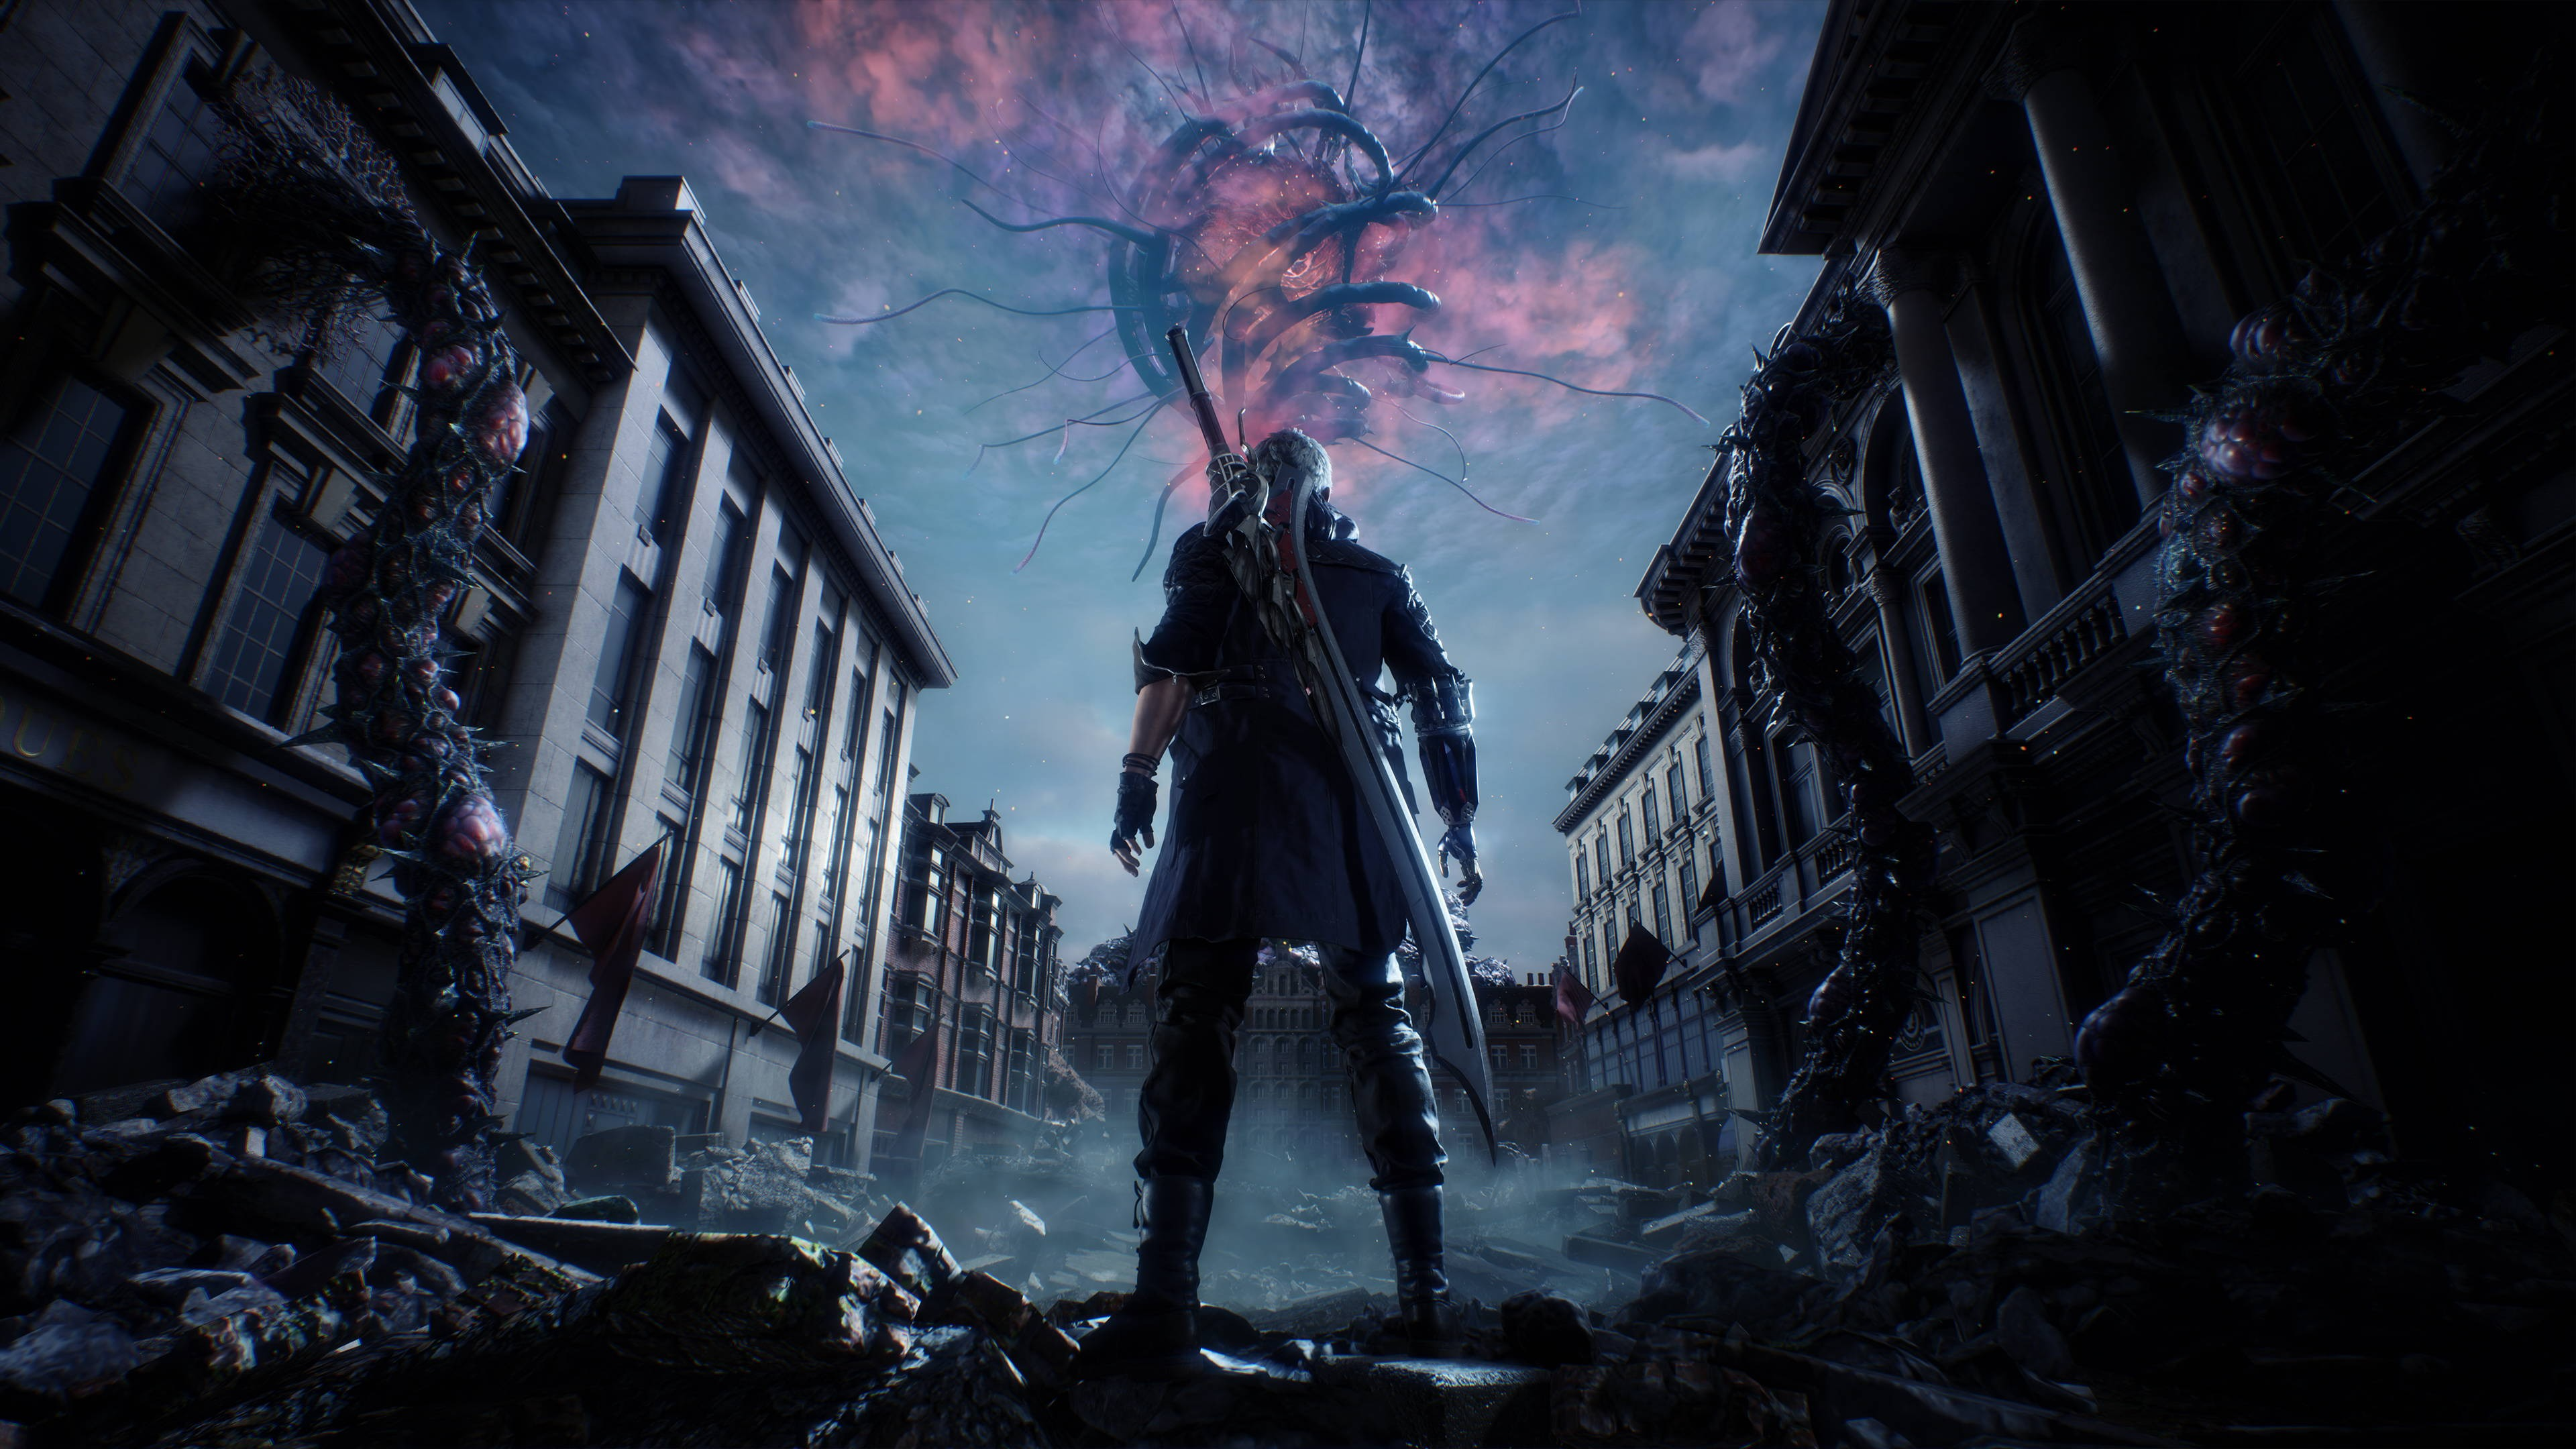 Nero From Devil May Cry 5 Wallpaper 4k Ultra Hd Id4327